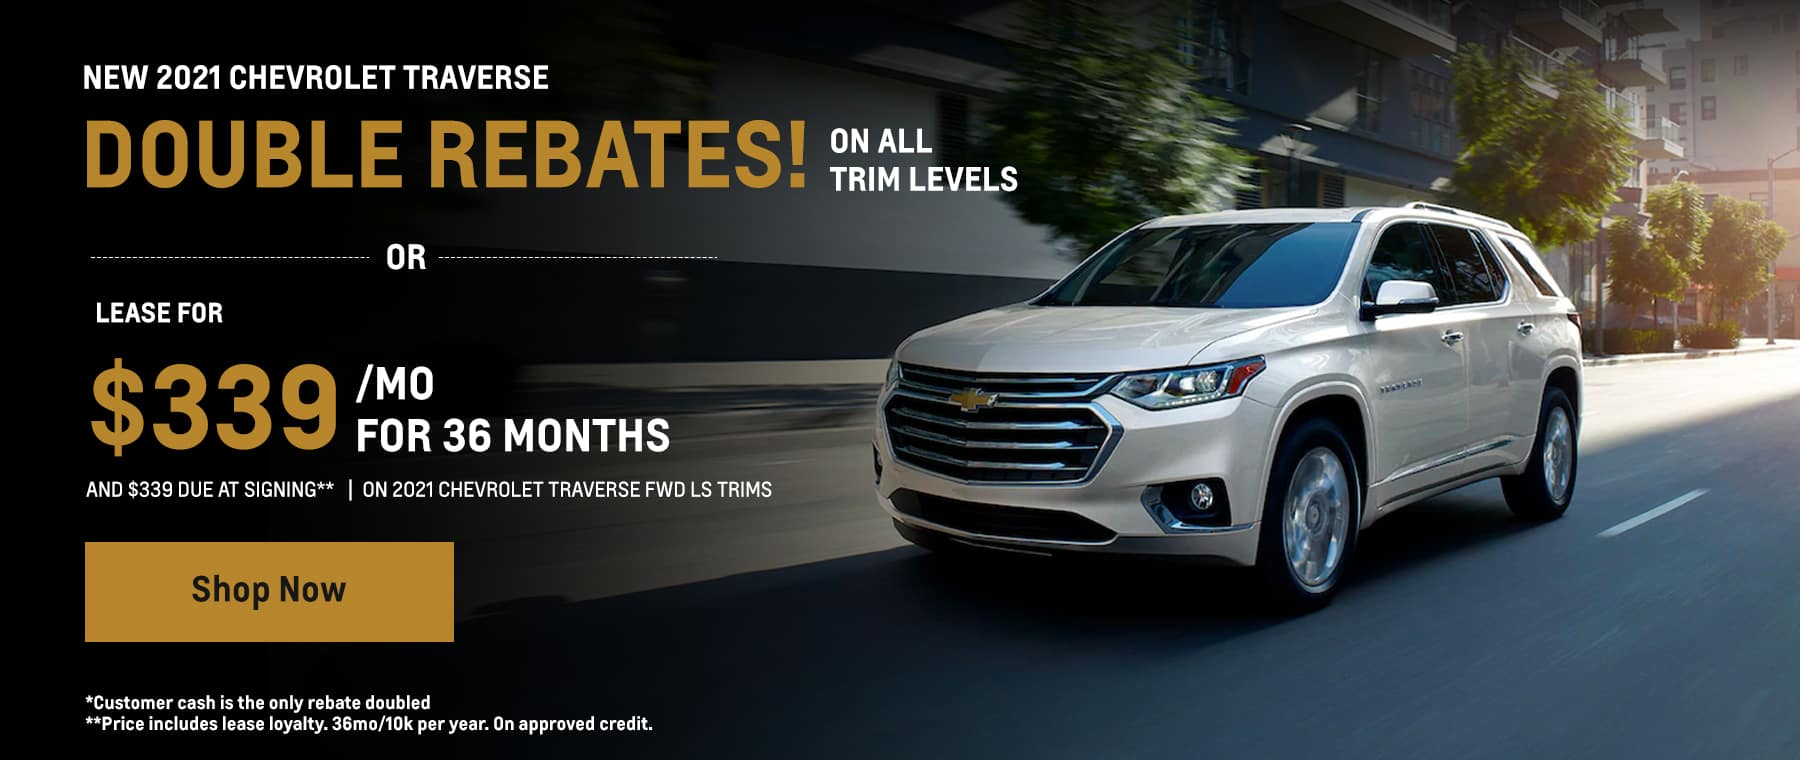 2021 Traverse - double rebates or lease for $339/mo